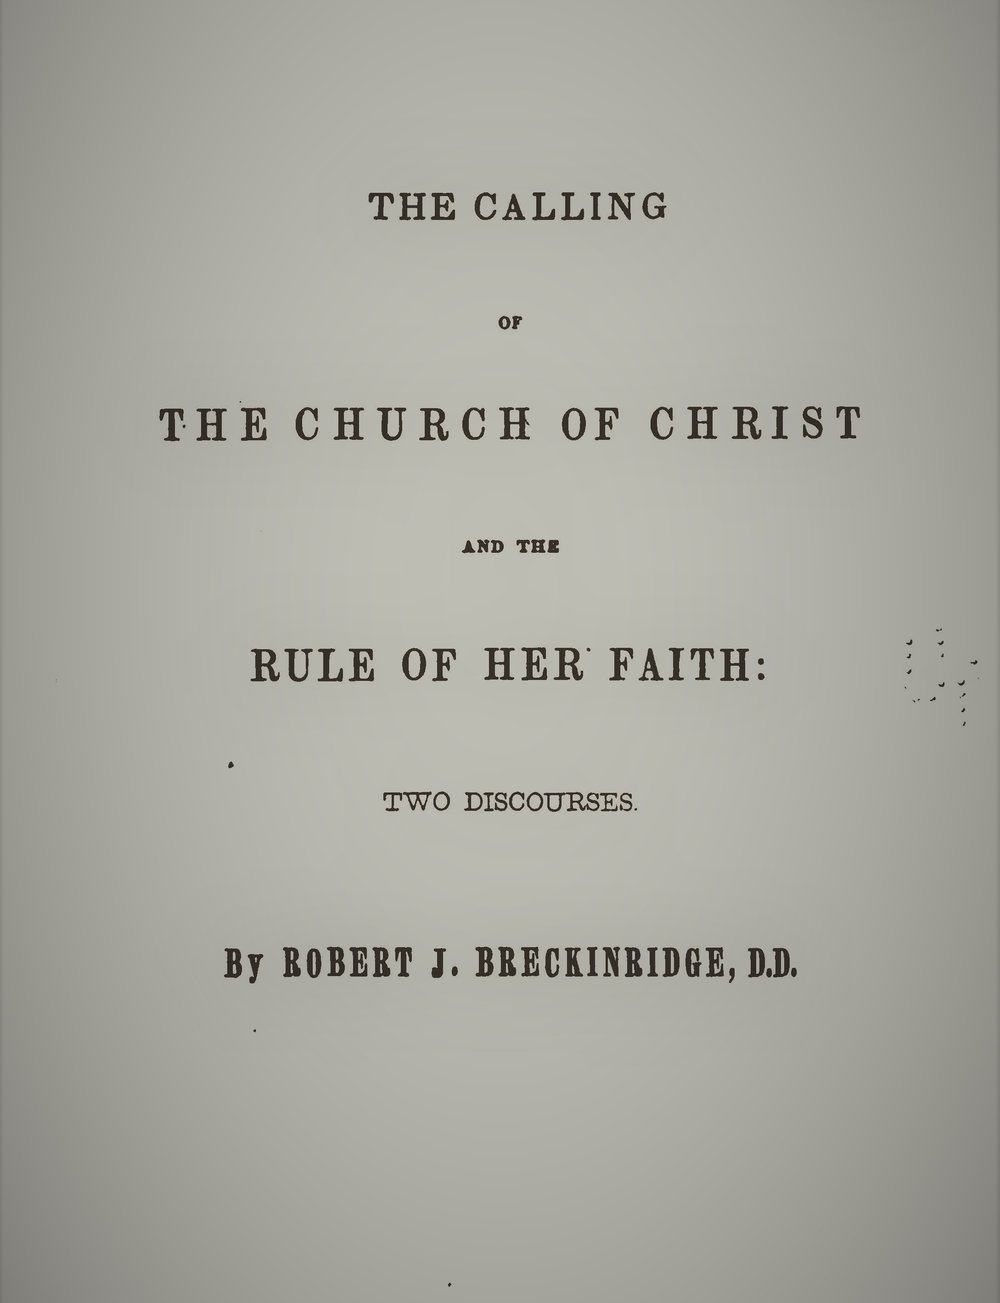 Breckinridge, Robert - The Calling of the Church of Christ and the Rule of Faith.jpg